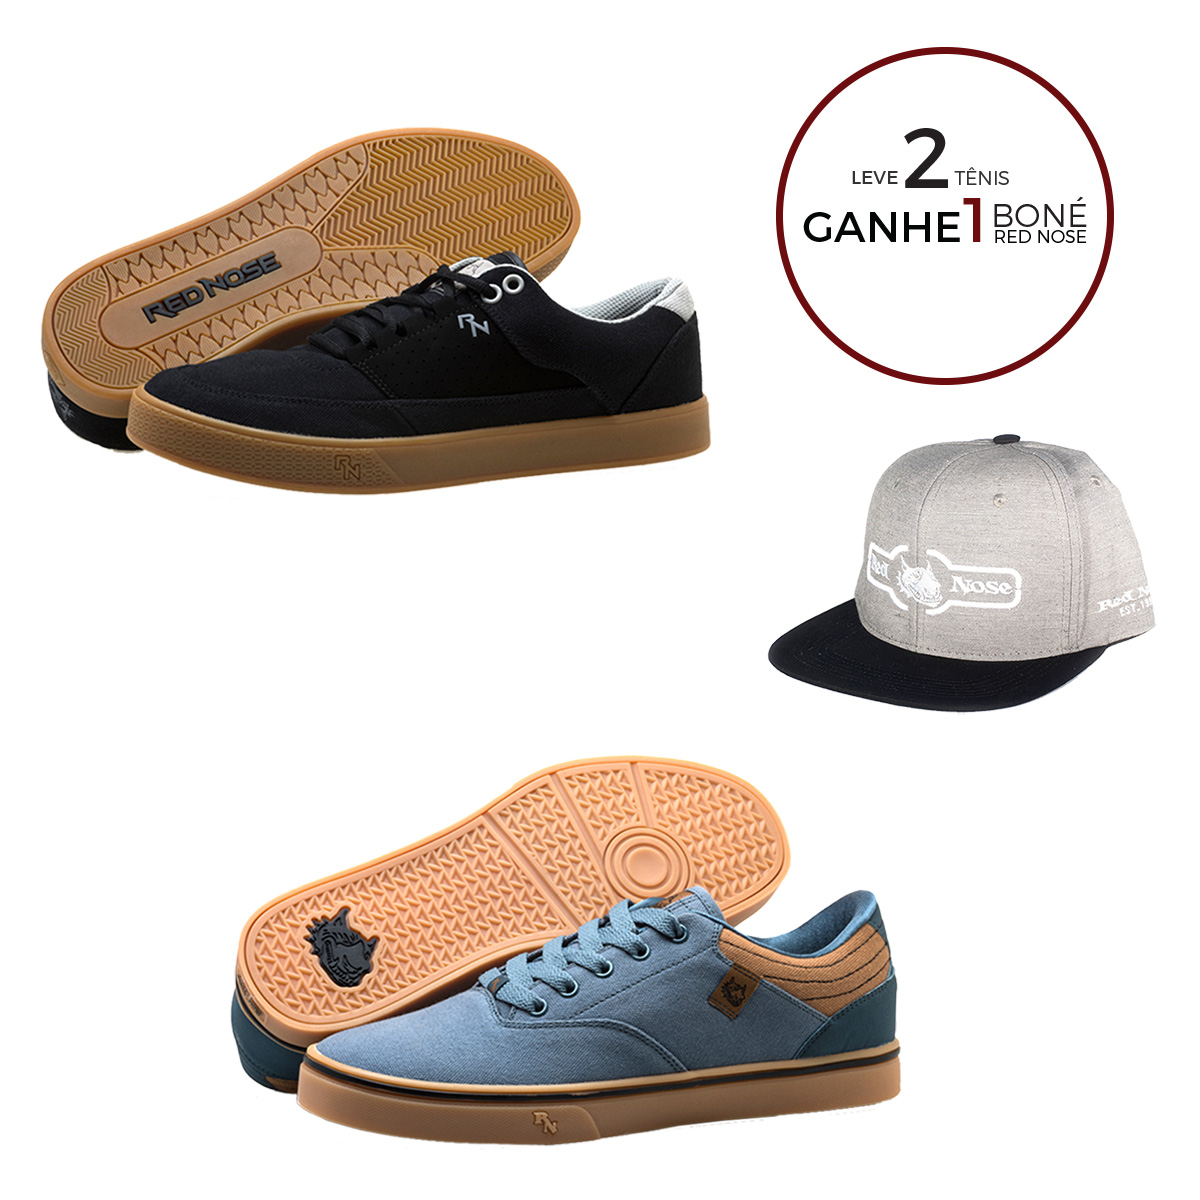 KIT Tênis Red Nose Kingpin + Arion + Boné Red Nose Snapback com ajuste - 02 Azul e Preto 37